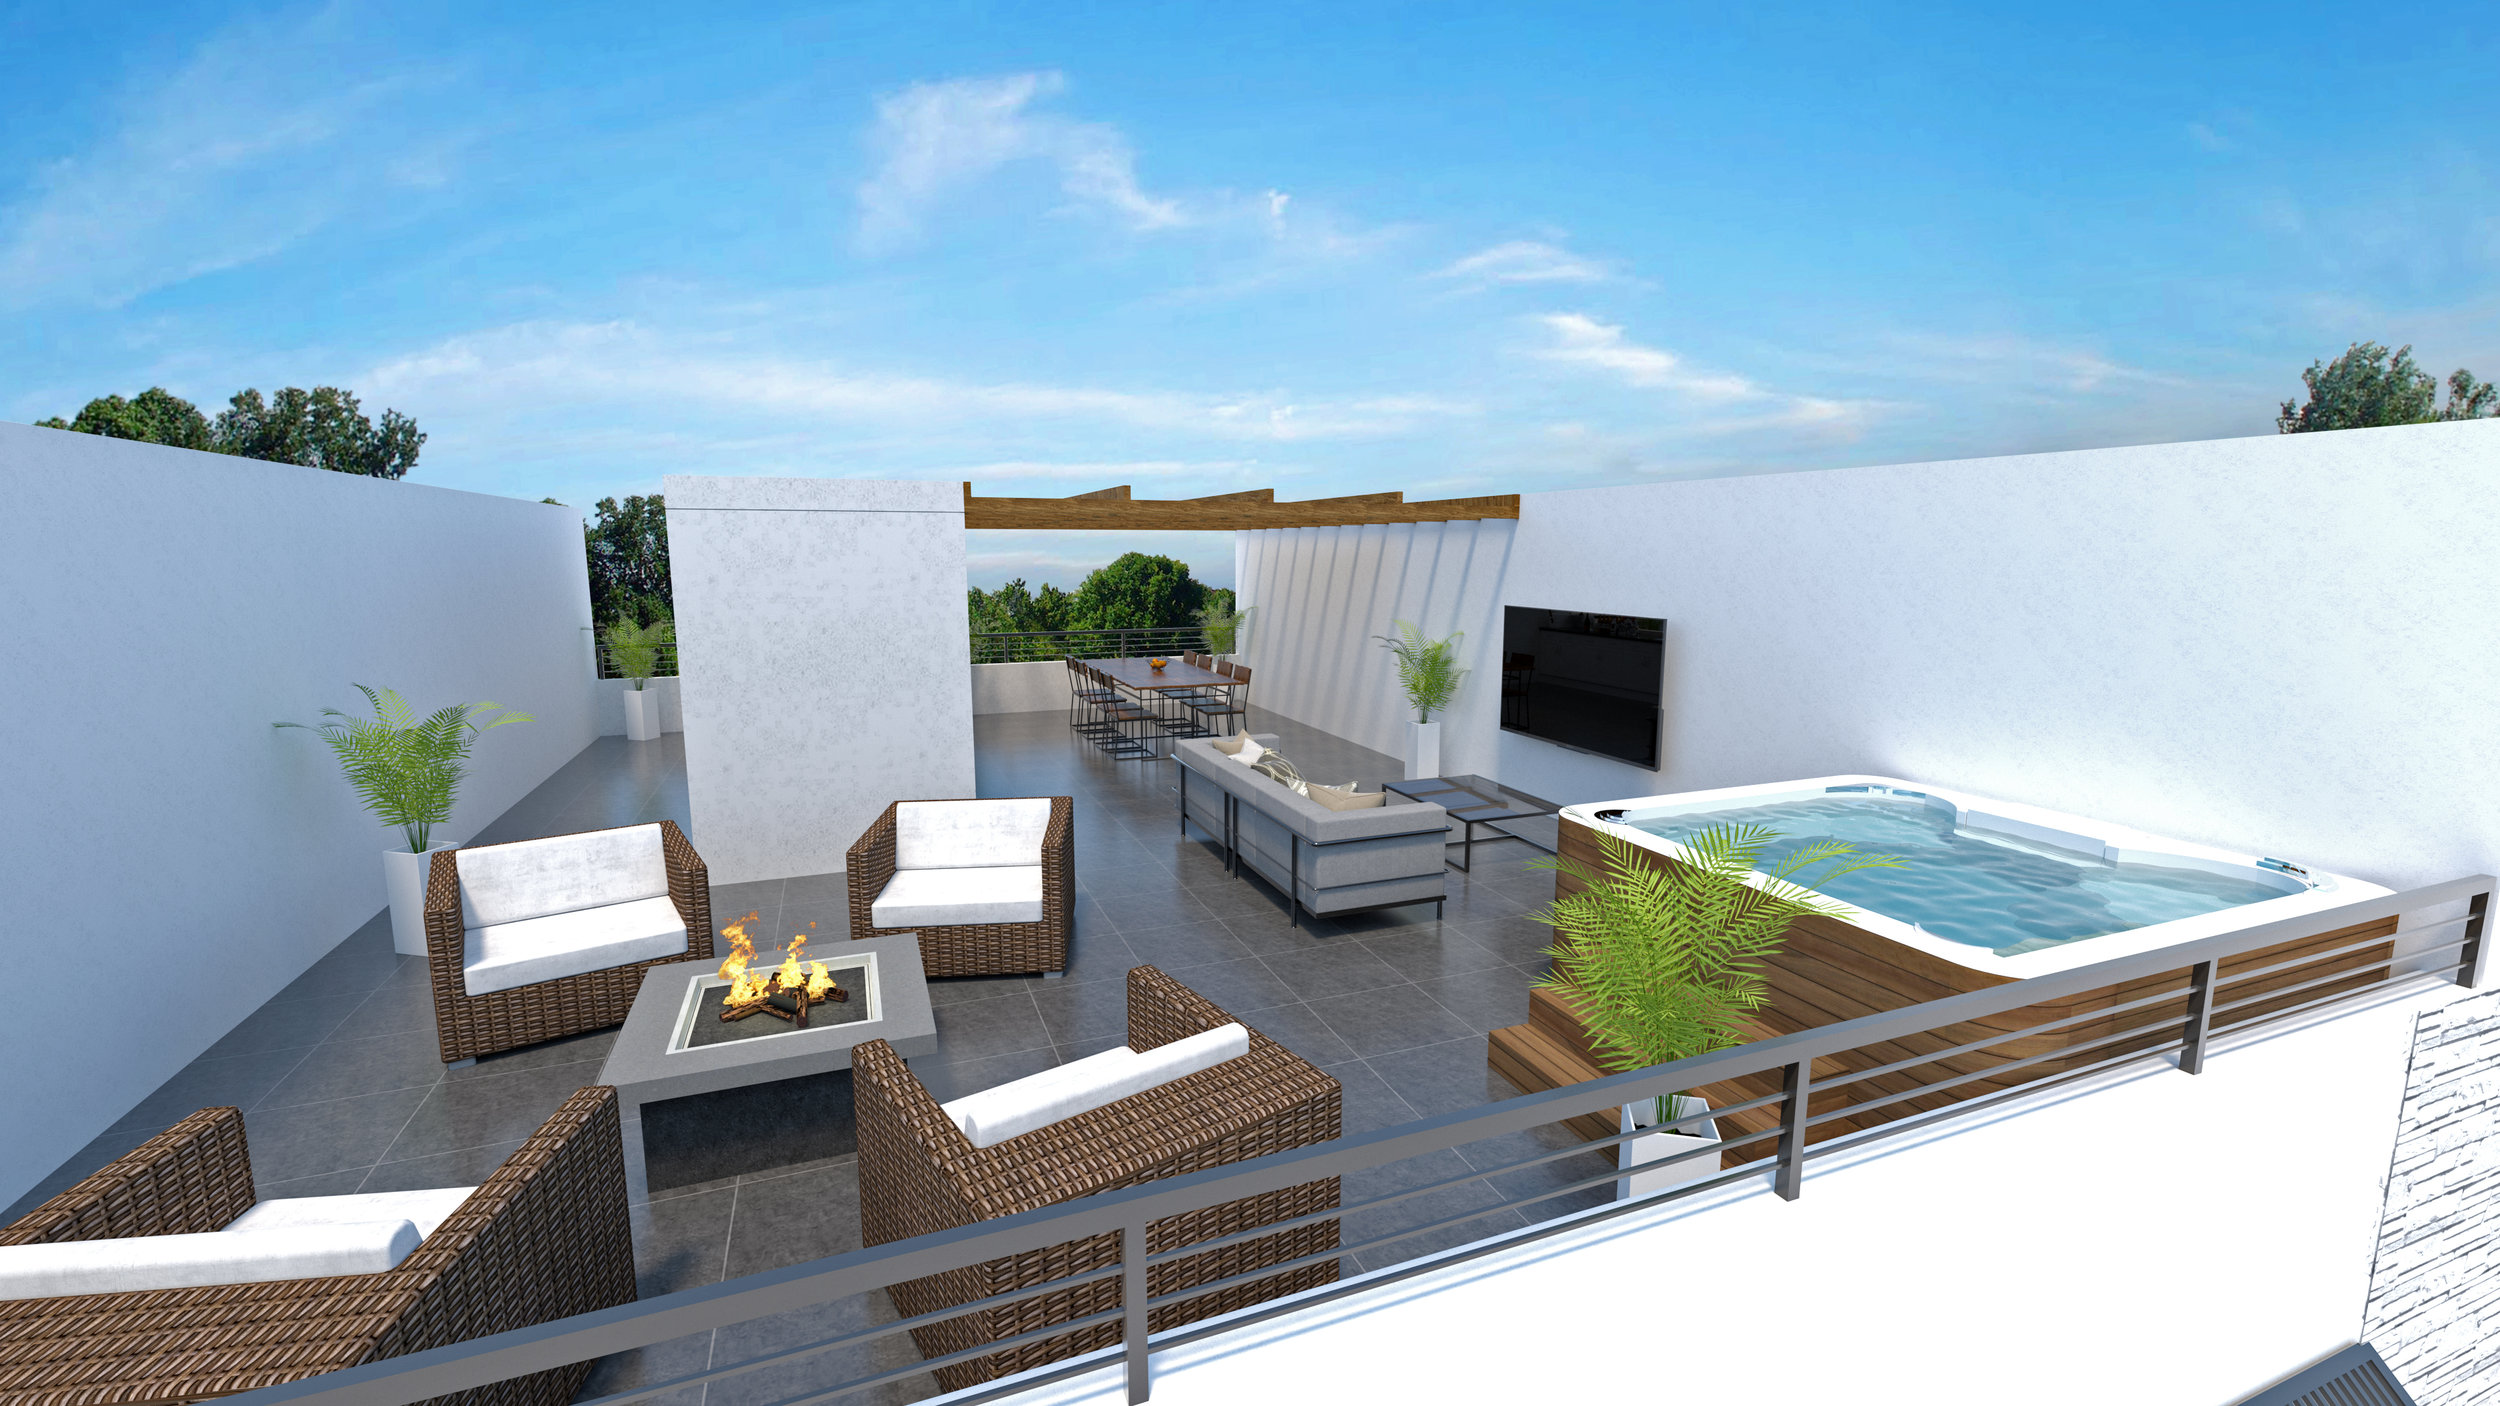 Jacuzzi-capable, the roofdeck is a the new backyard with a spacious, functional layout.